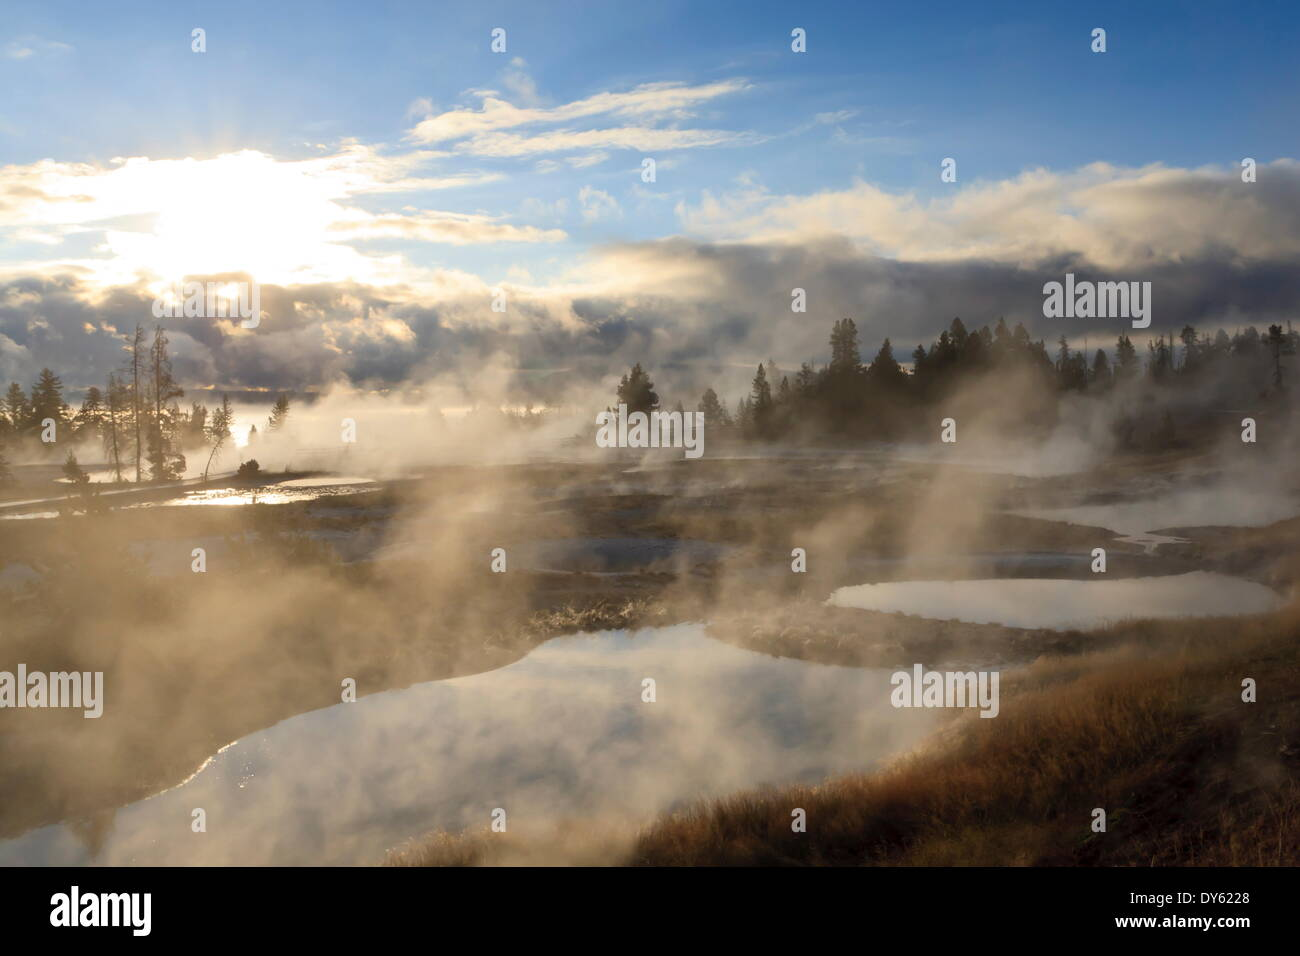 Freezing mists, dawn, West Thumb Geyser Basin, Yellowstone National Park, UNESCO Site, Wyoming, USA - Stock Image